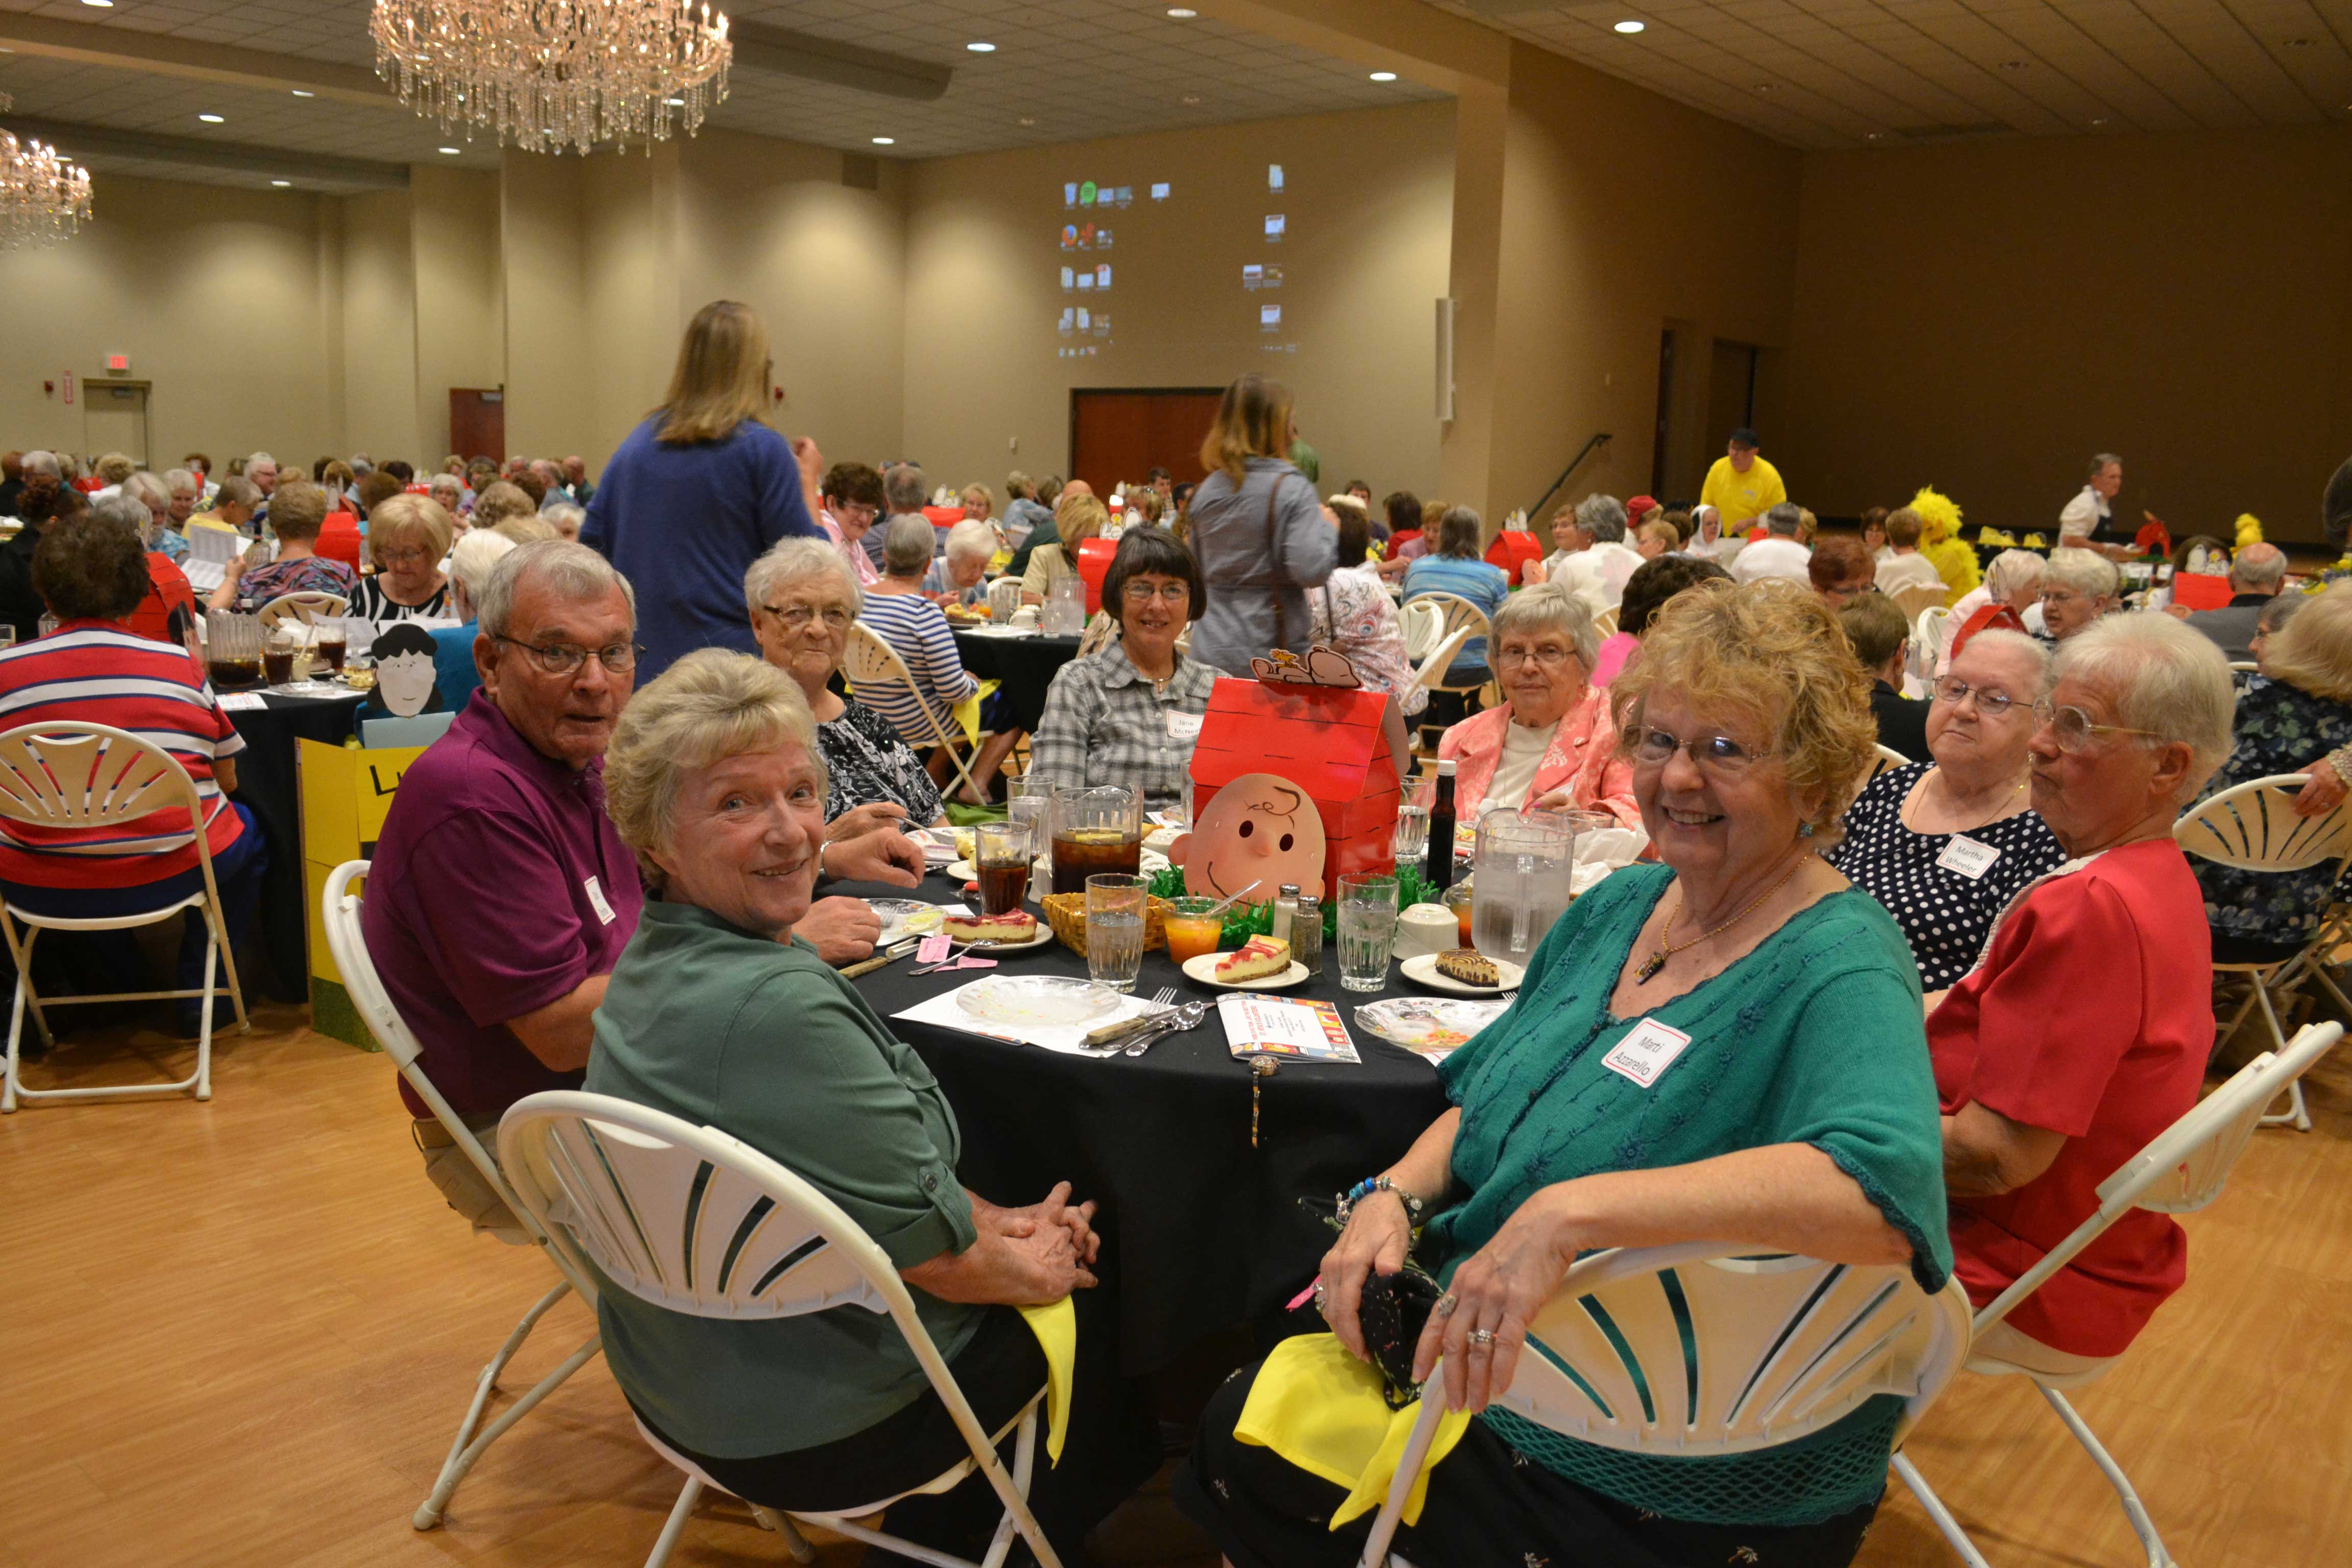 St. Rita's Volunteers to Present $227,000 Check to Medical Center During Annual Appreciation Luncheon